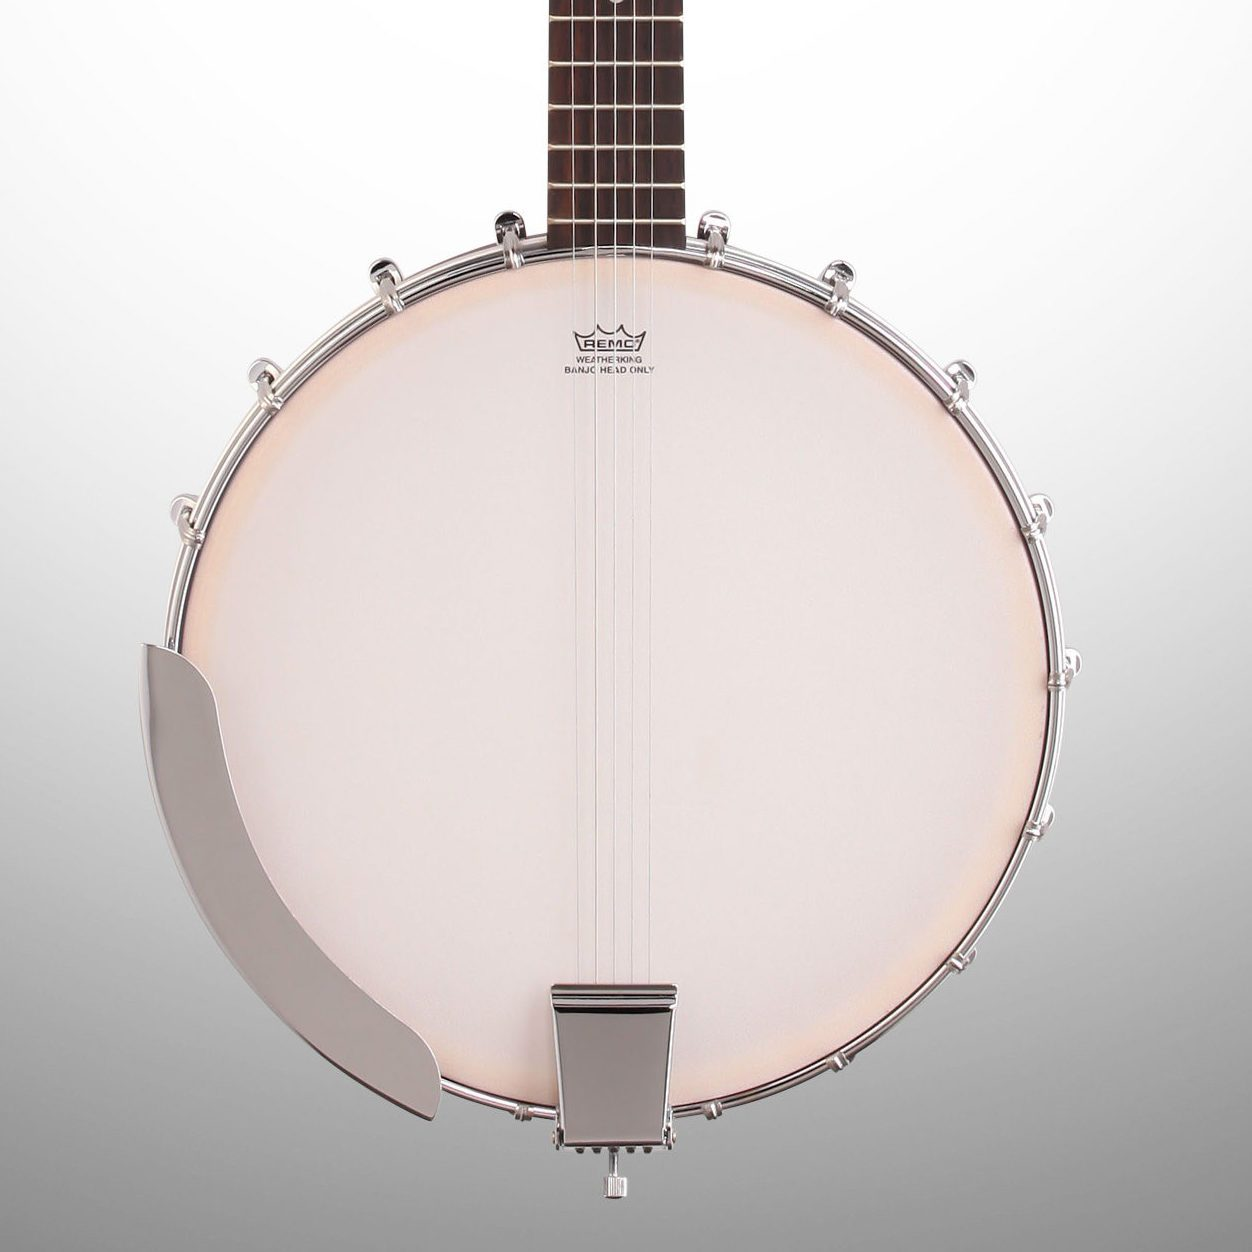 Epiphone MB100 Banjo, Natural